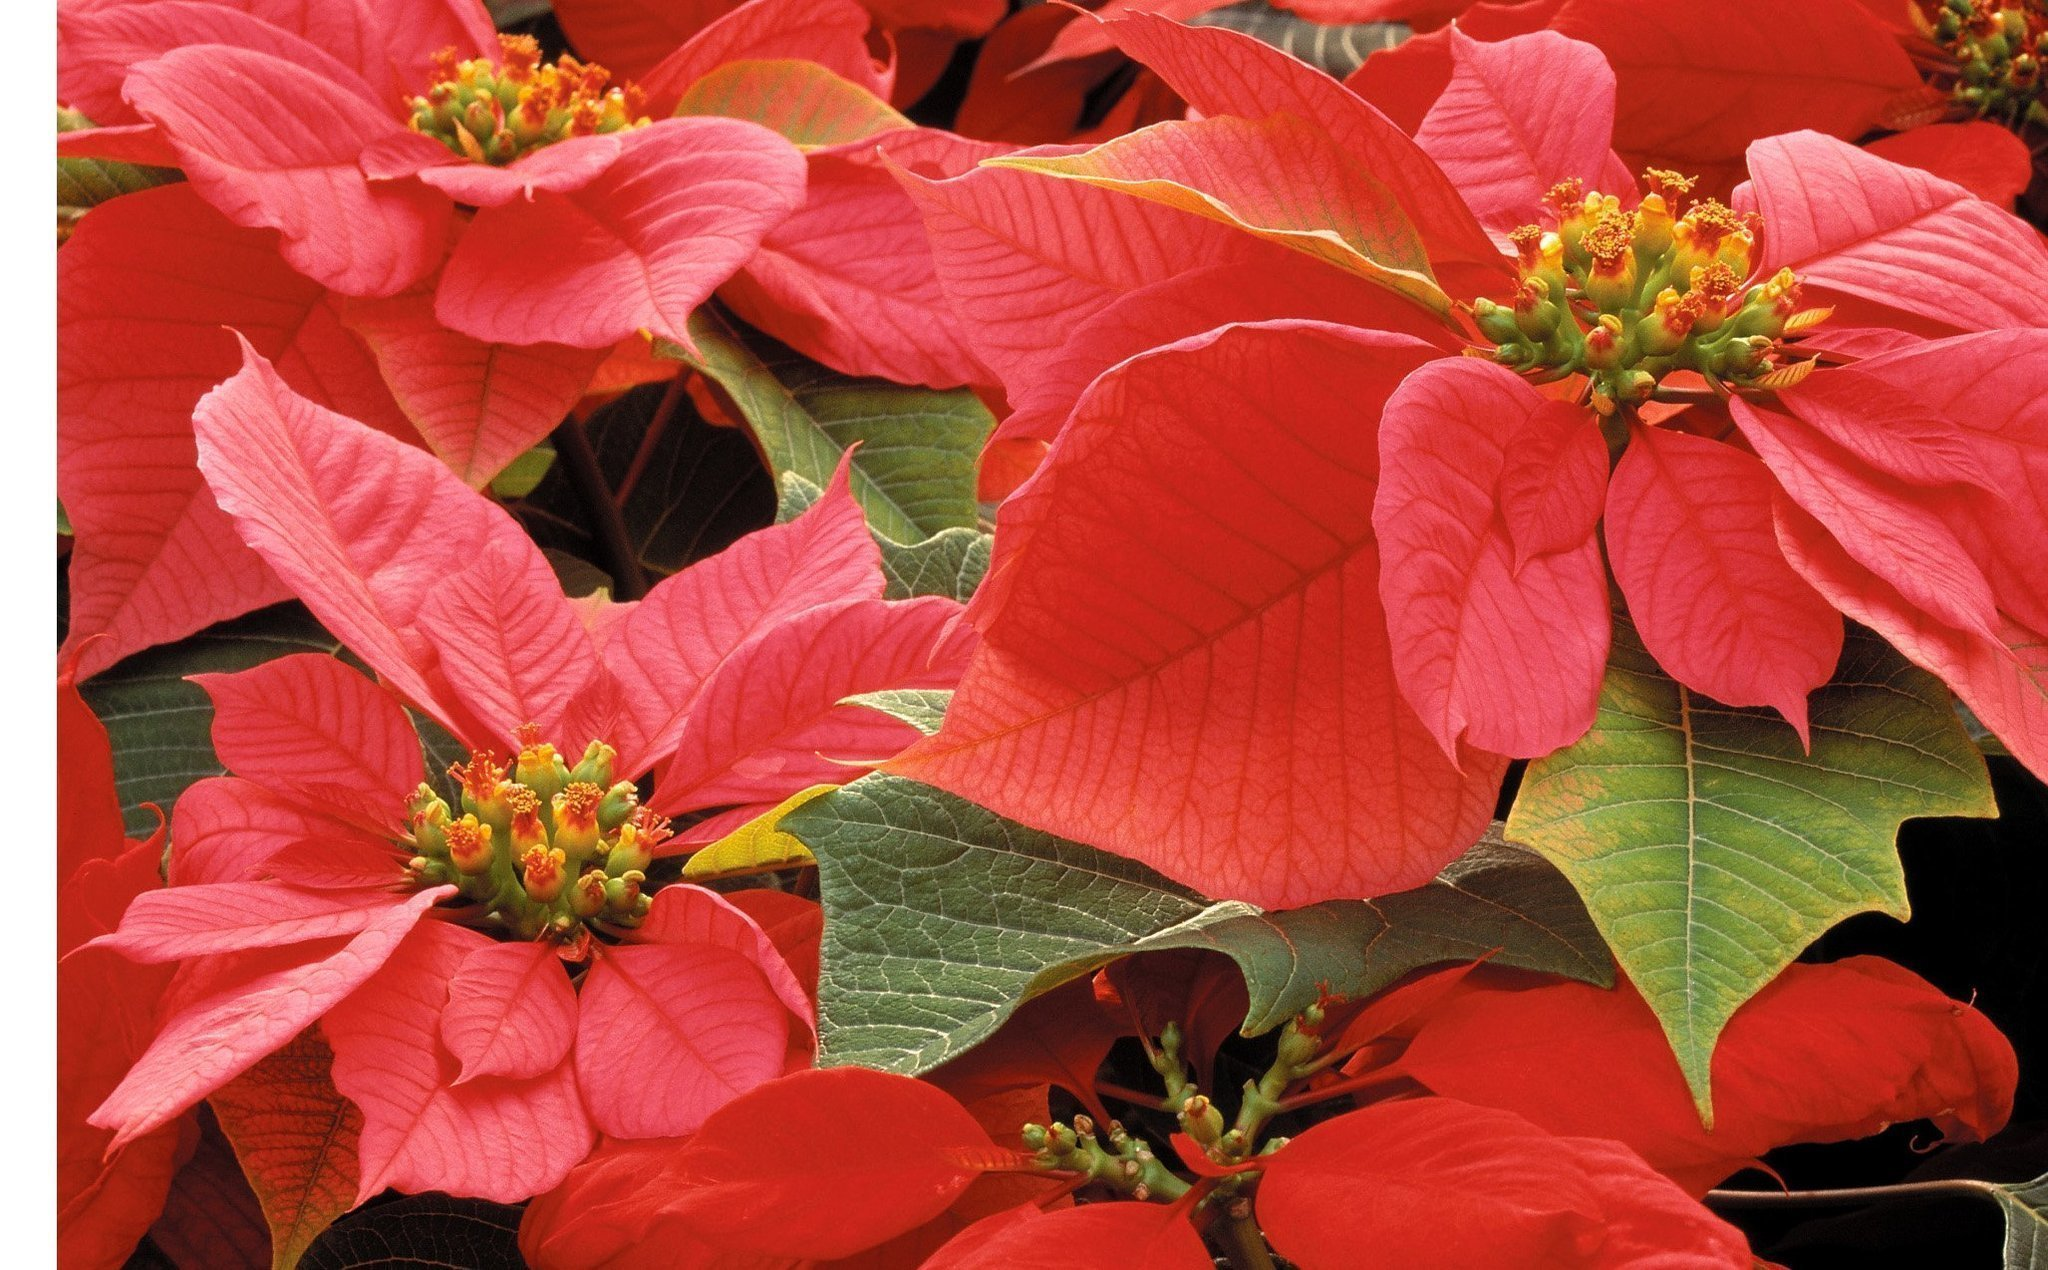 Holiday colors come alive with poinsettias - The San Diego Union-Tribune